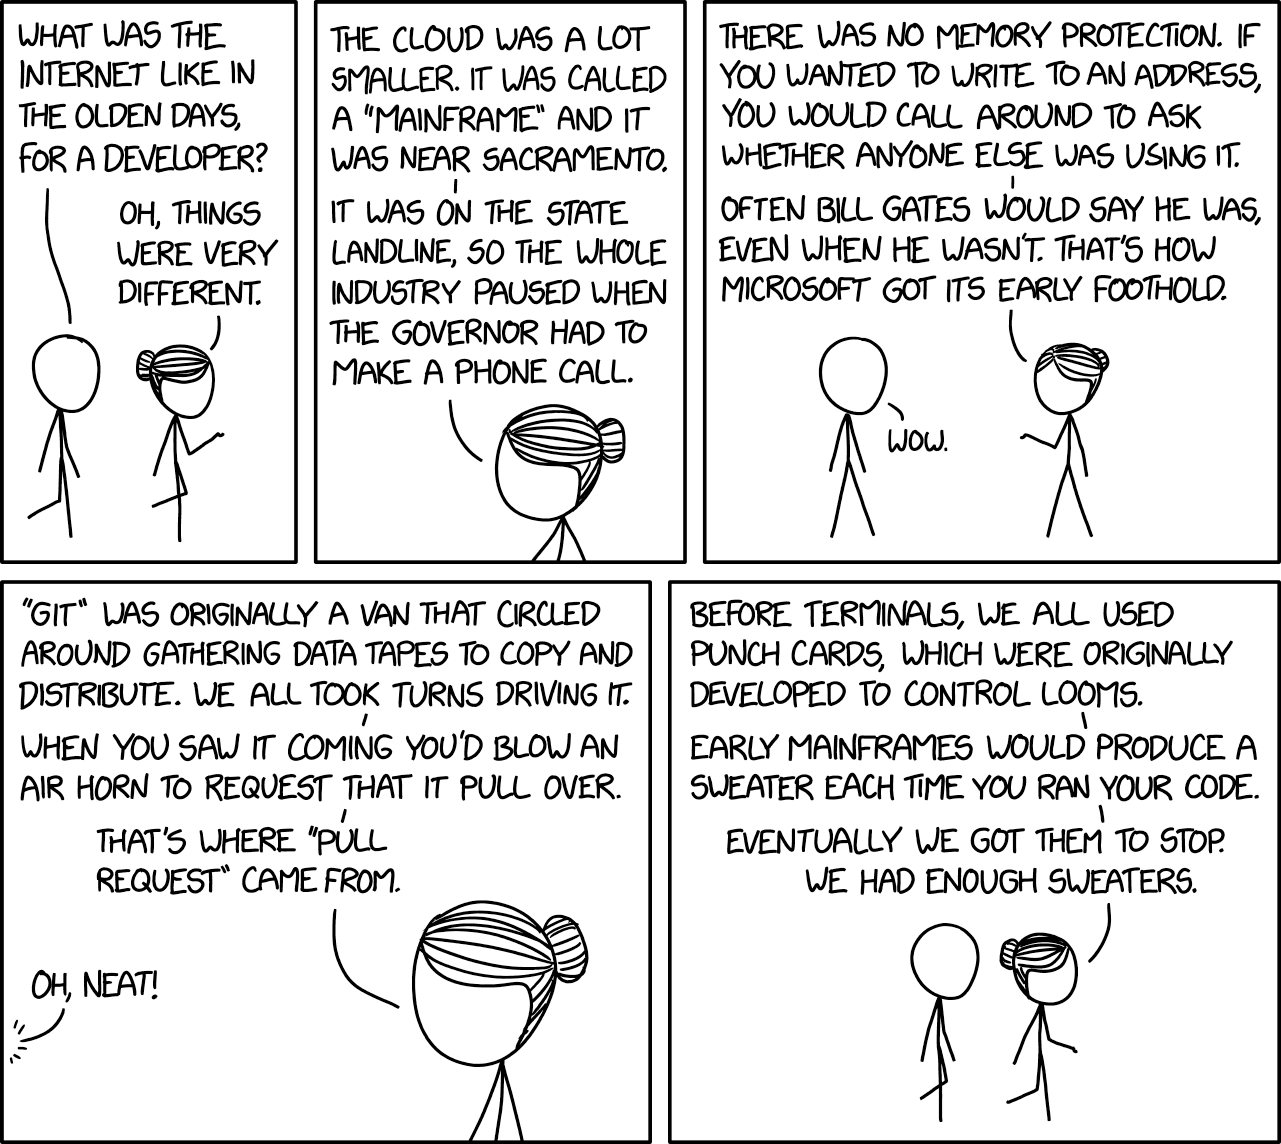 IMAGE(https://imgs.xkcd.com/comics/old_days_2_2x.png)